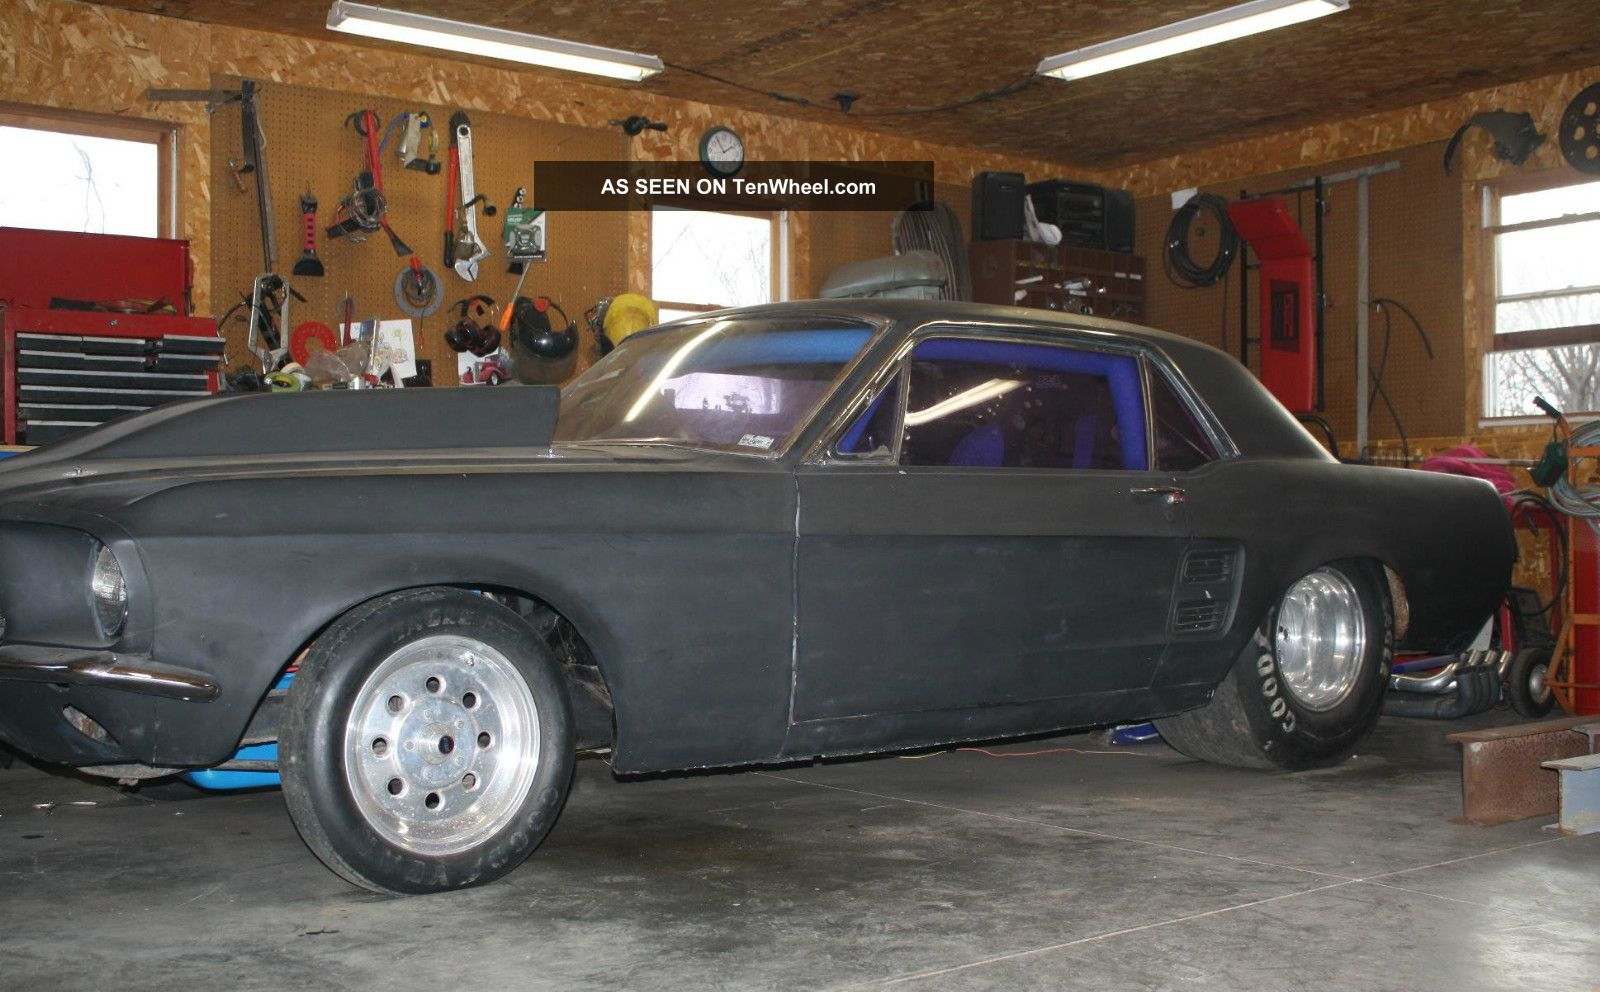 1967 Mustang Drag Car Prostreet Hotrod Fast Tubbed Bbf 9 \